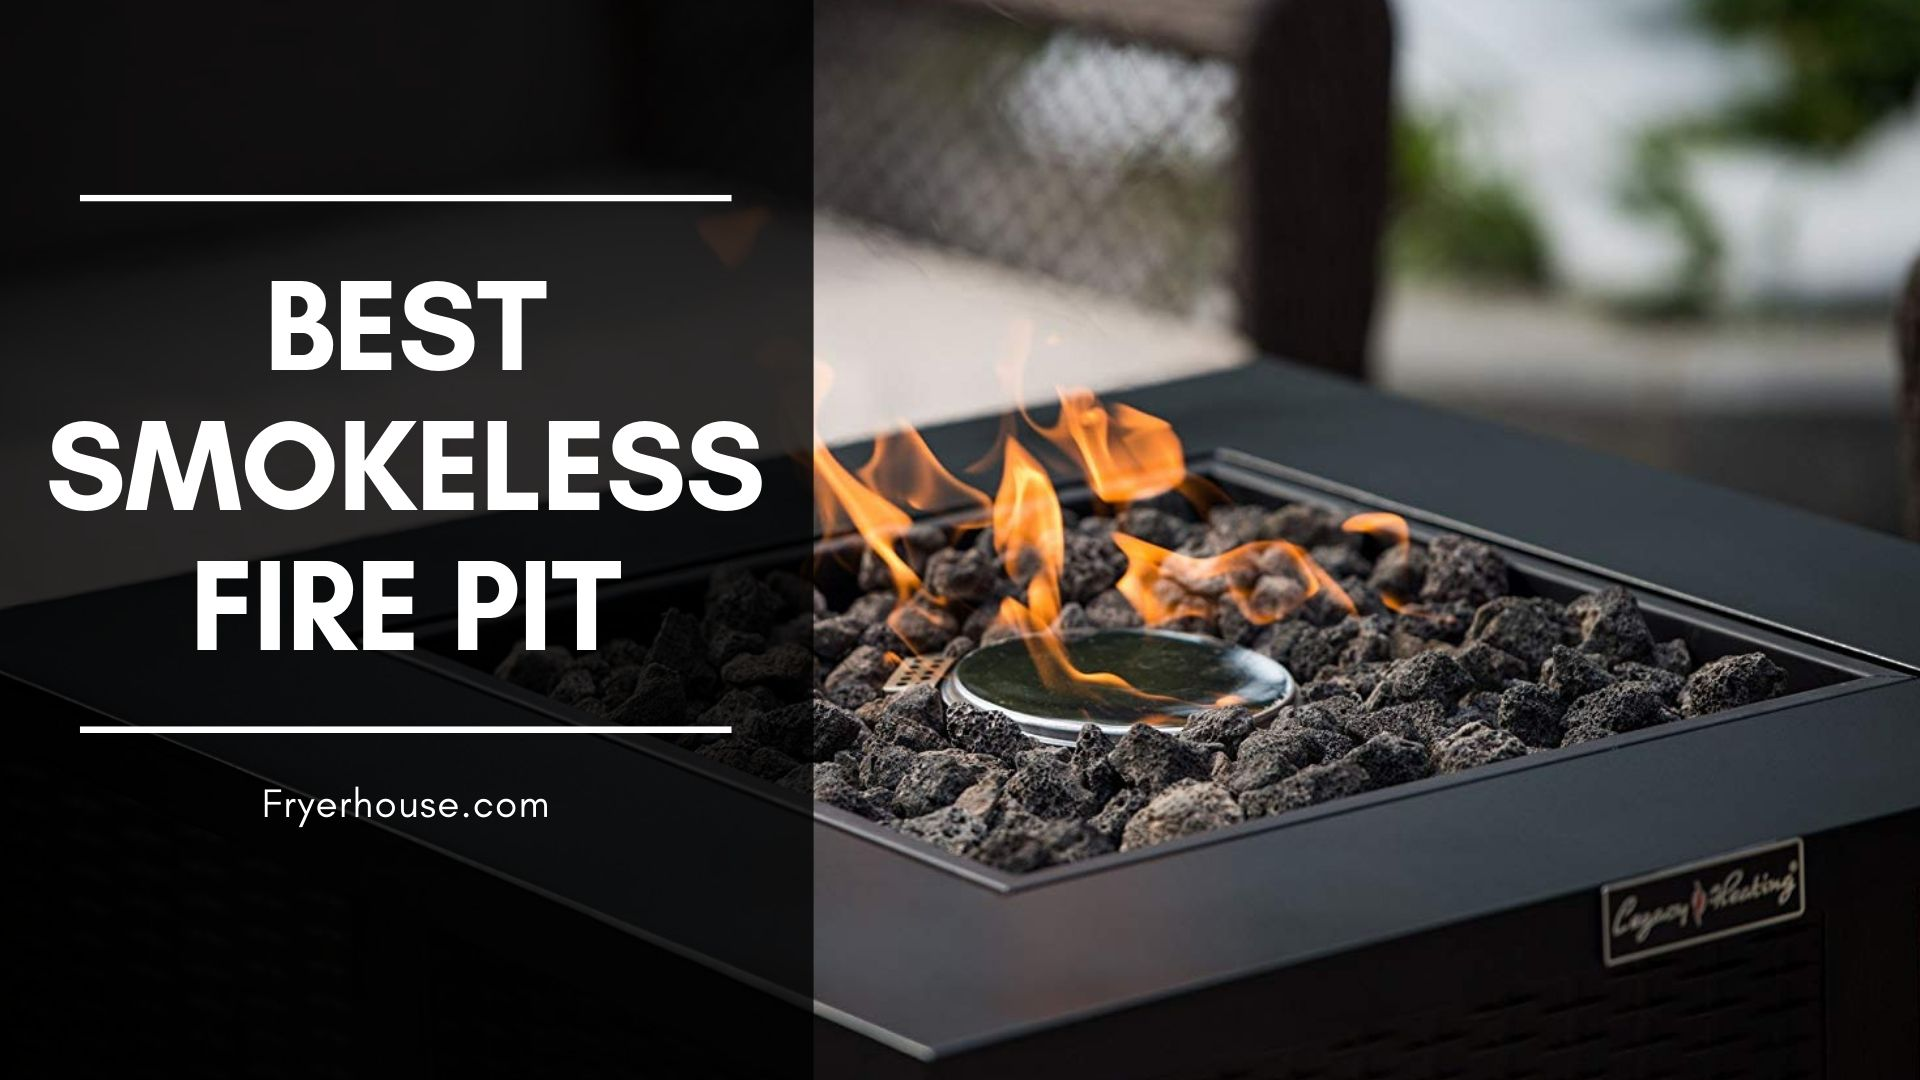 The Best Smokeless Fire Pit